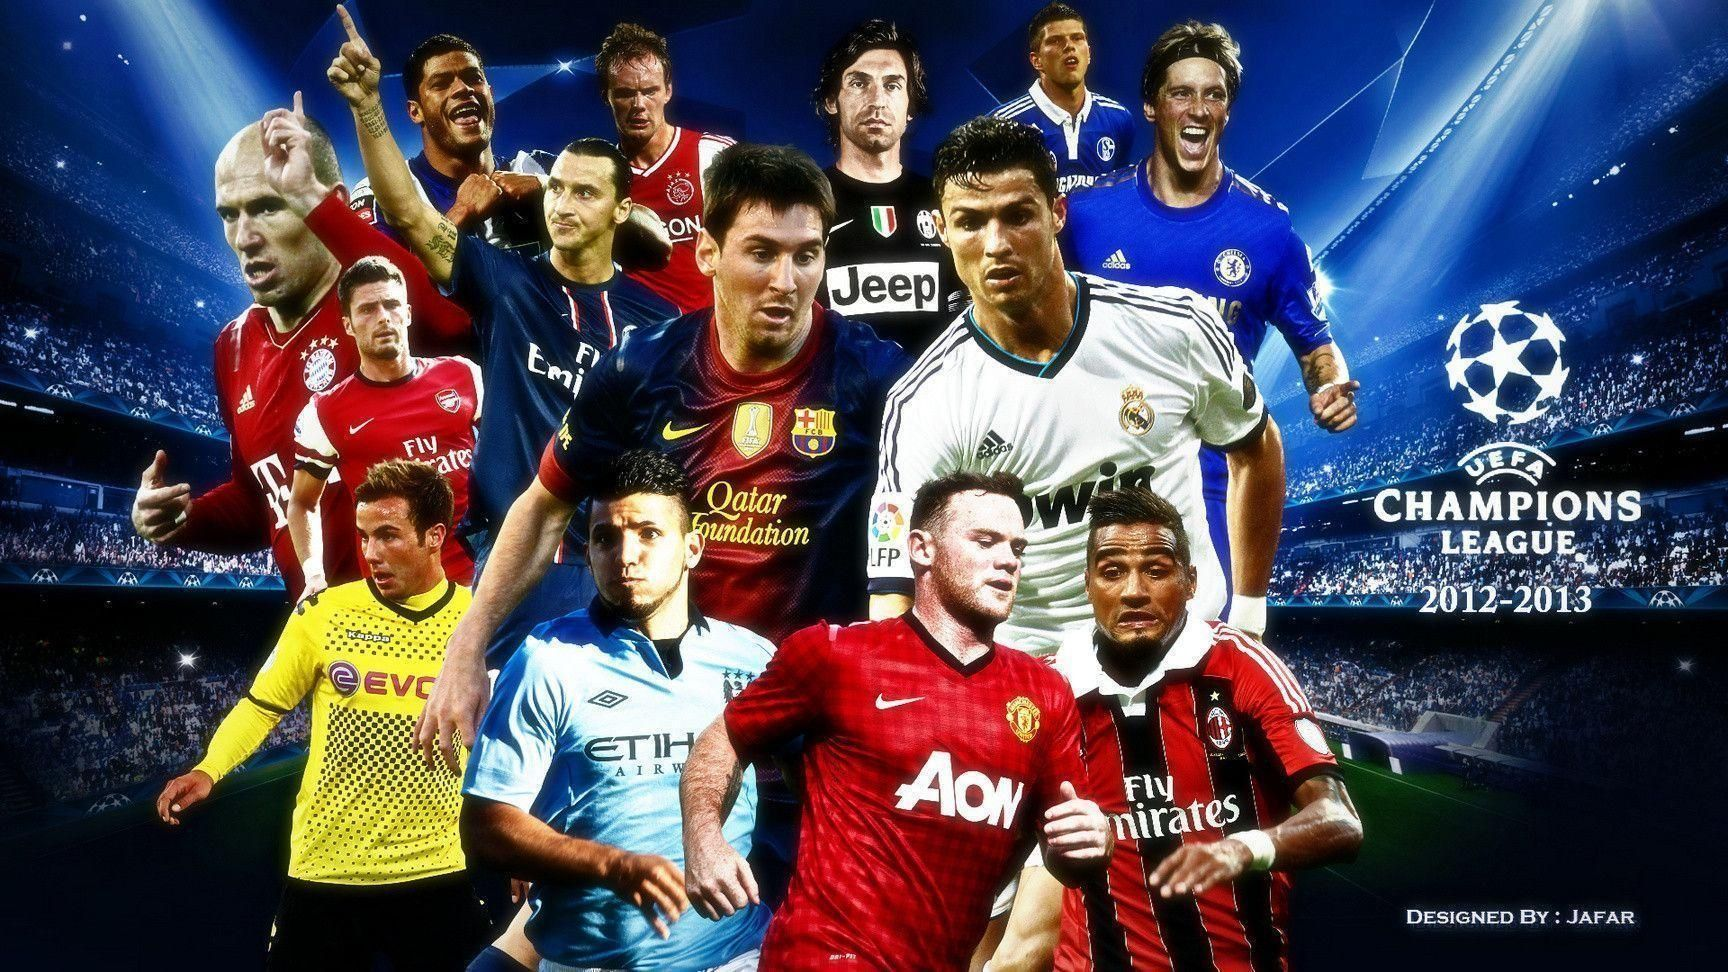 Football Stars Wallpapers In 2020 Uefa Champions League Manchester United Wallpaper Champions League